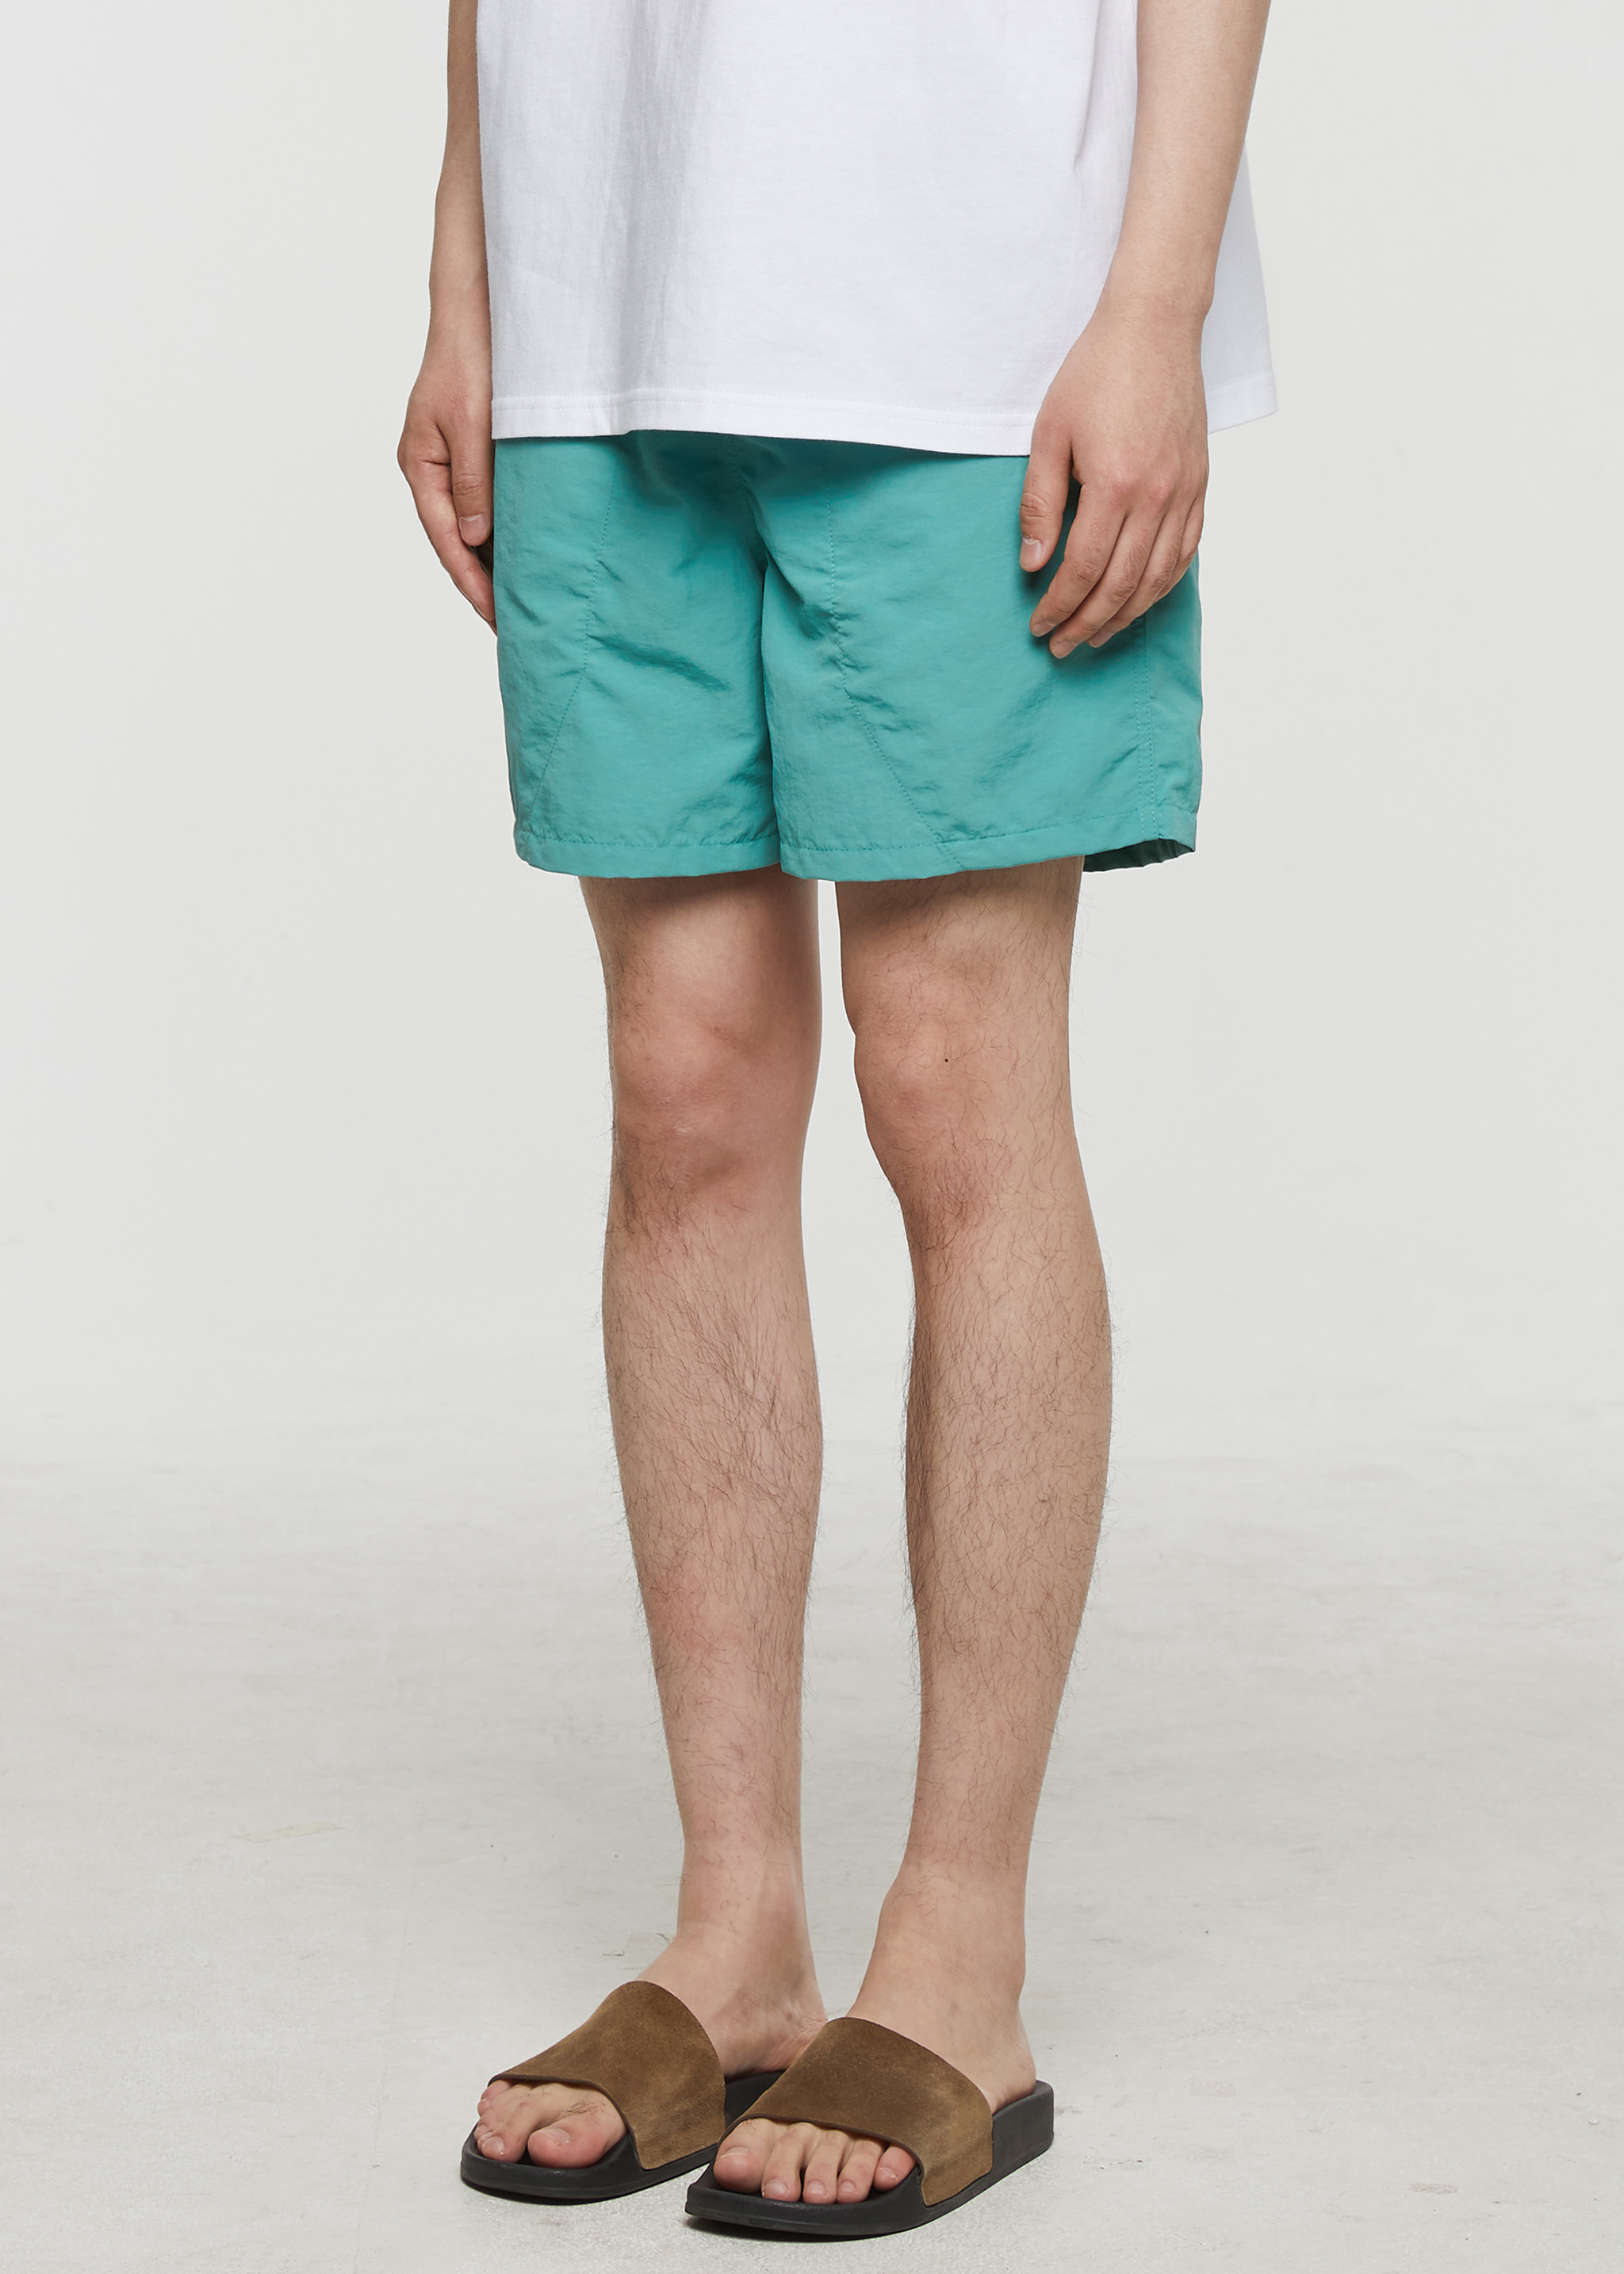 Errday Shorts (Mint)